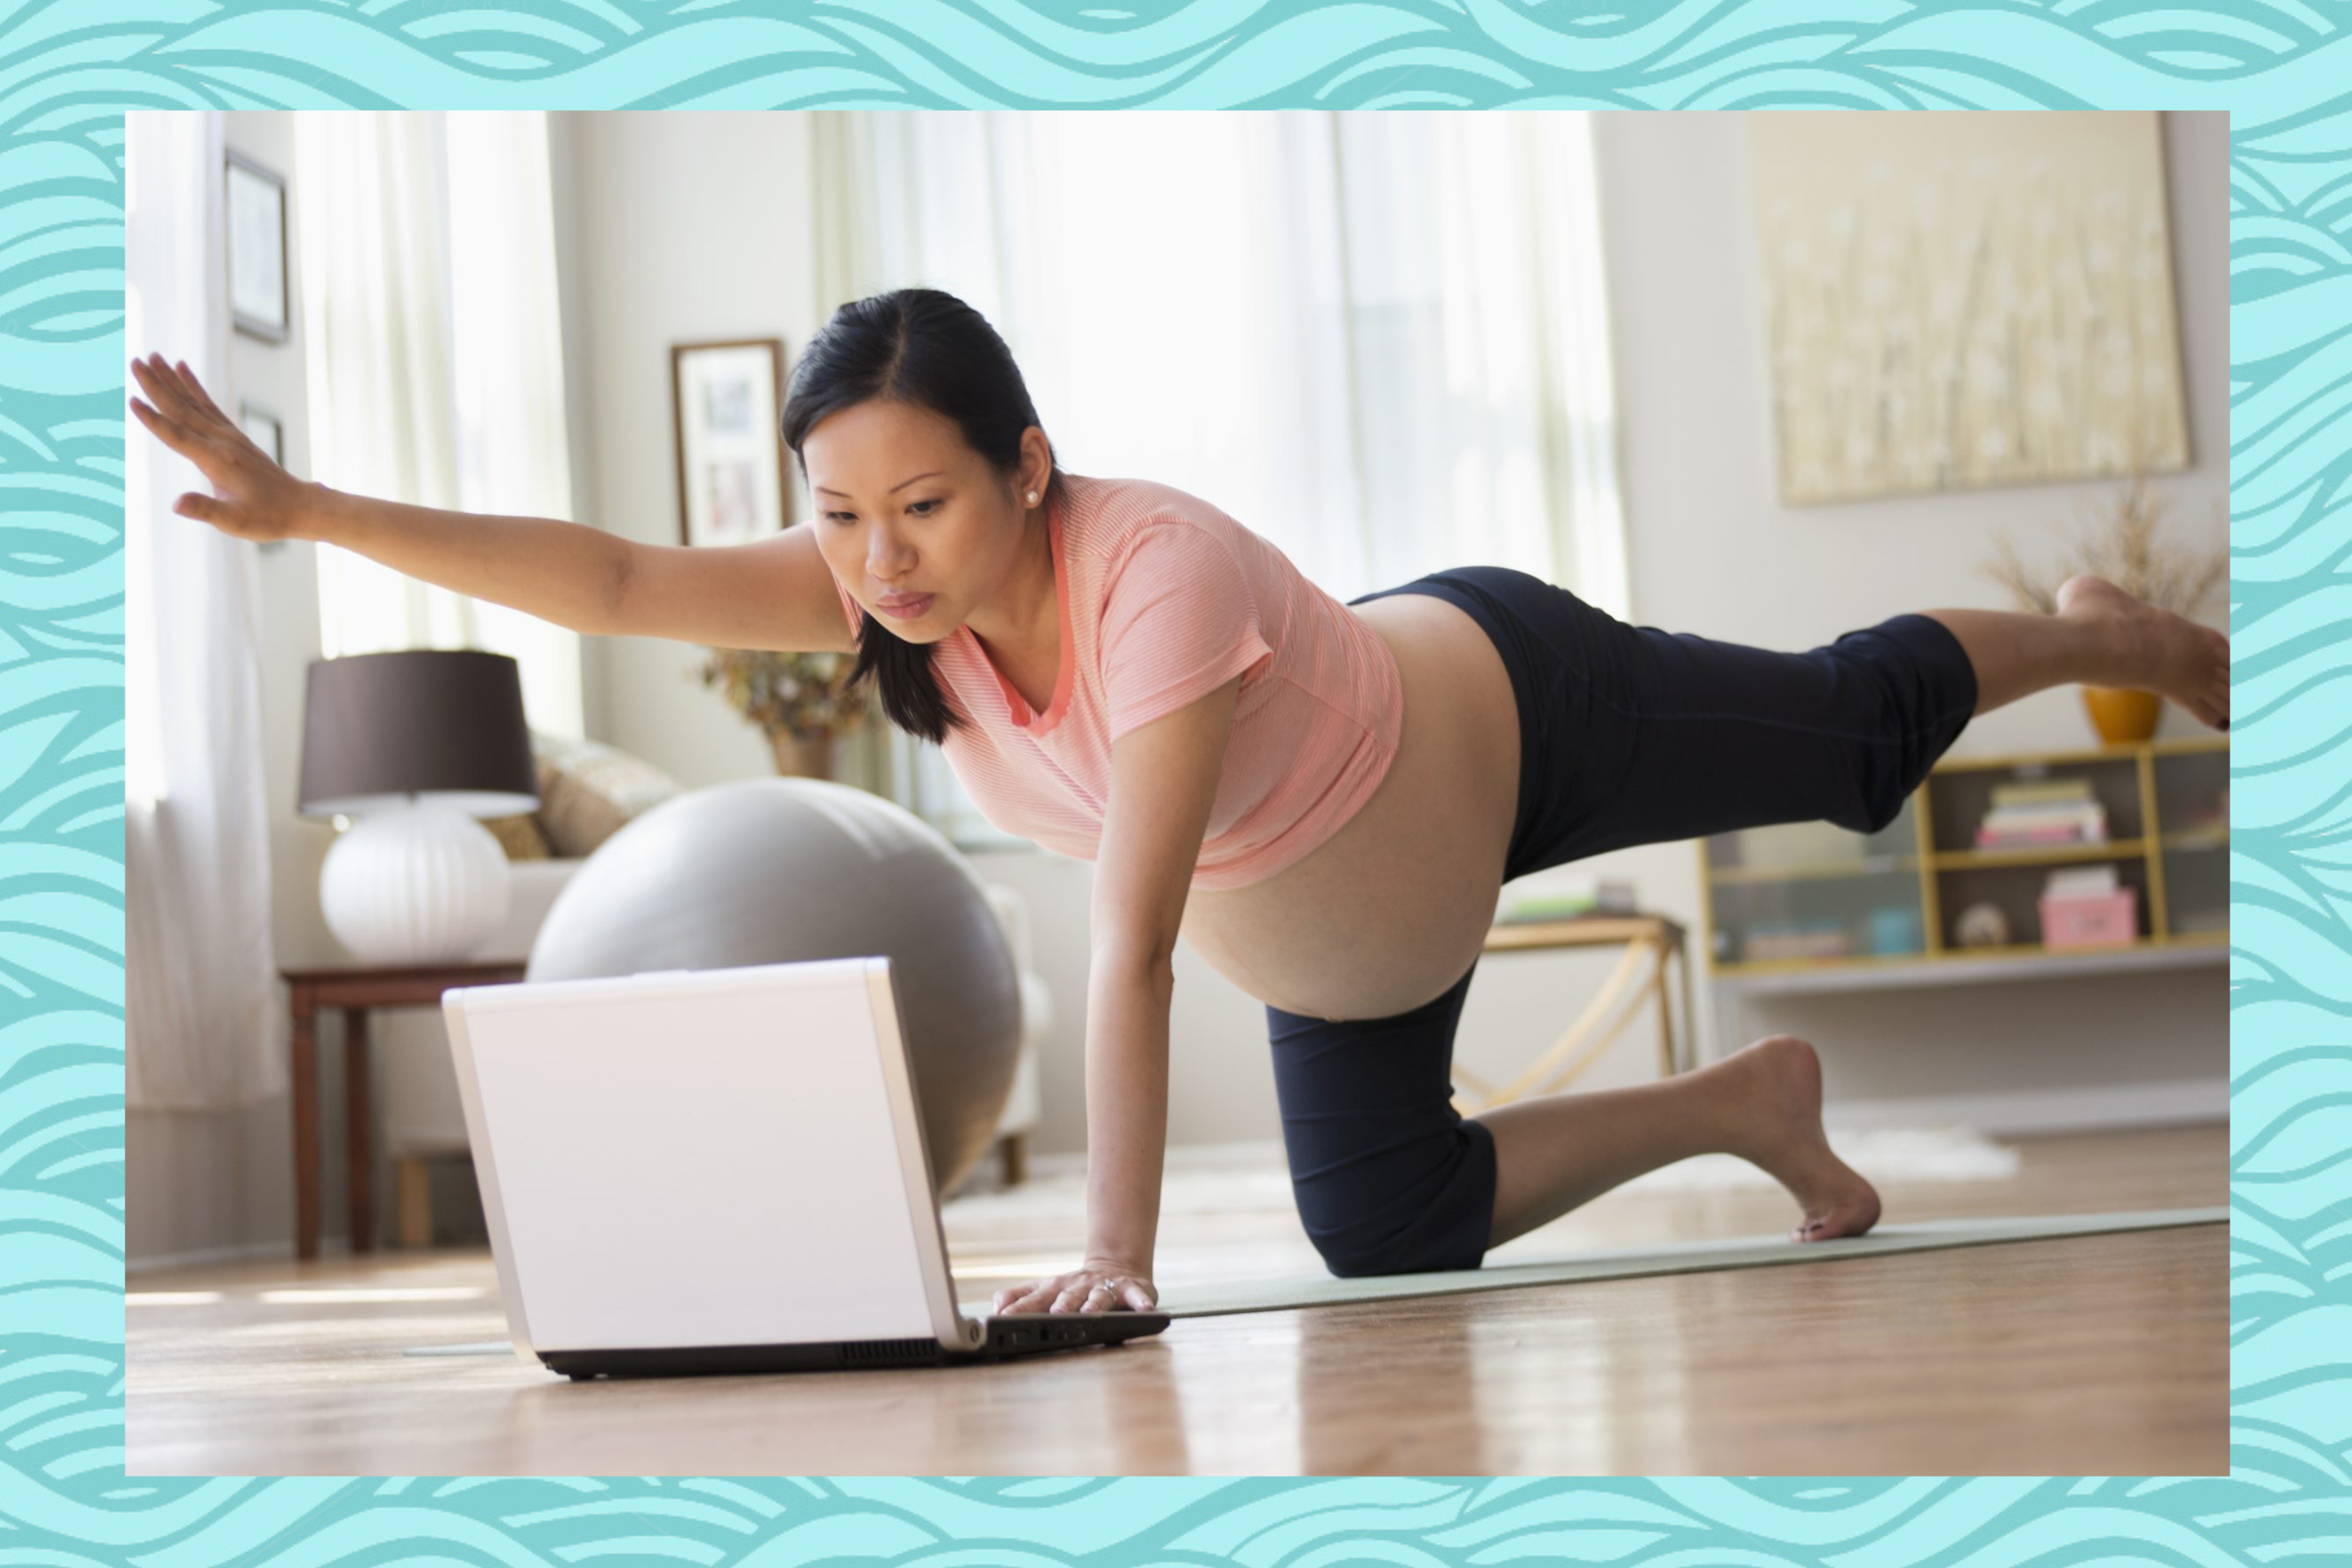 Pregnant woman practicing yoga online on a computer